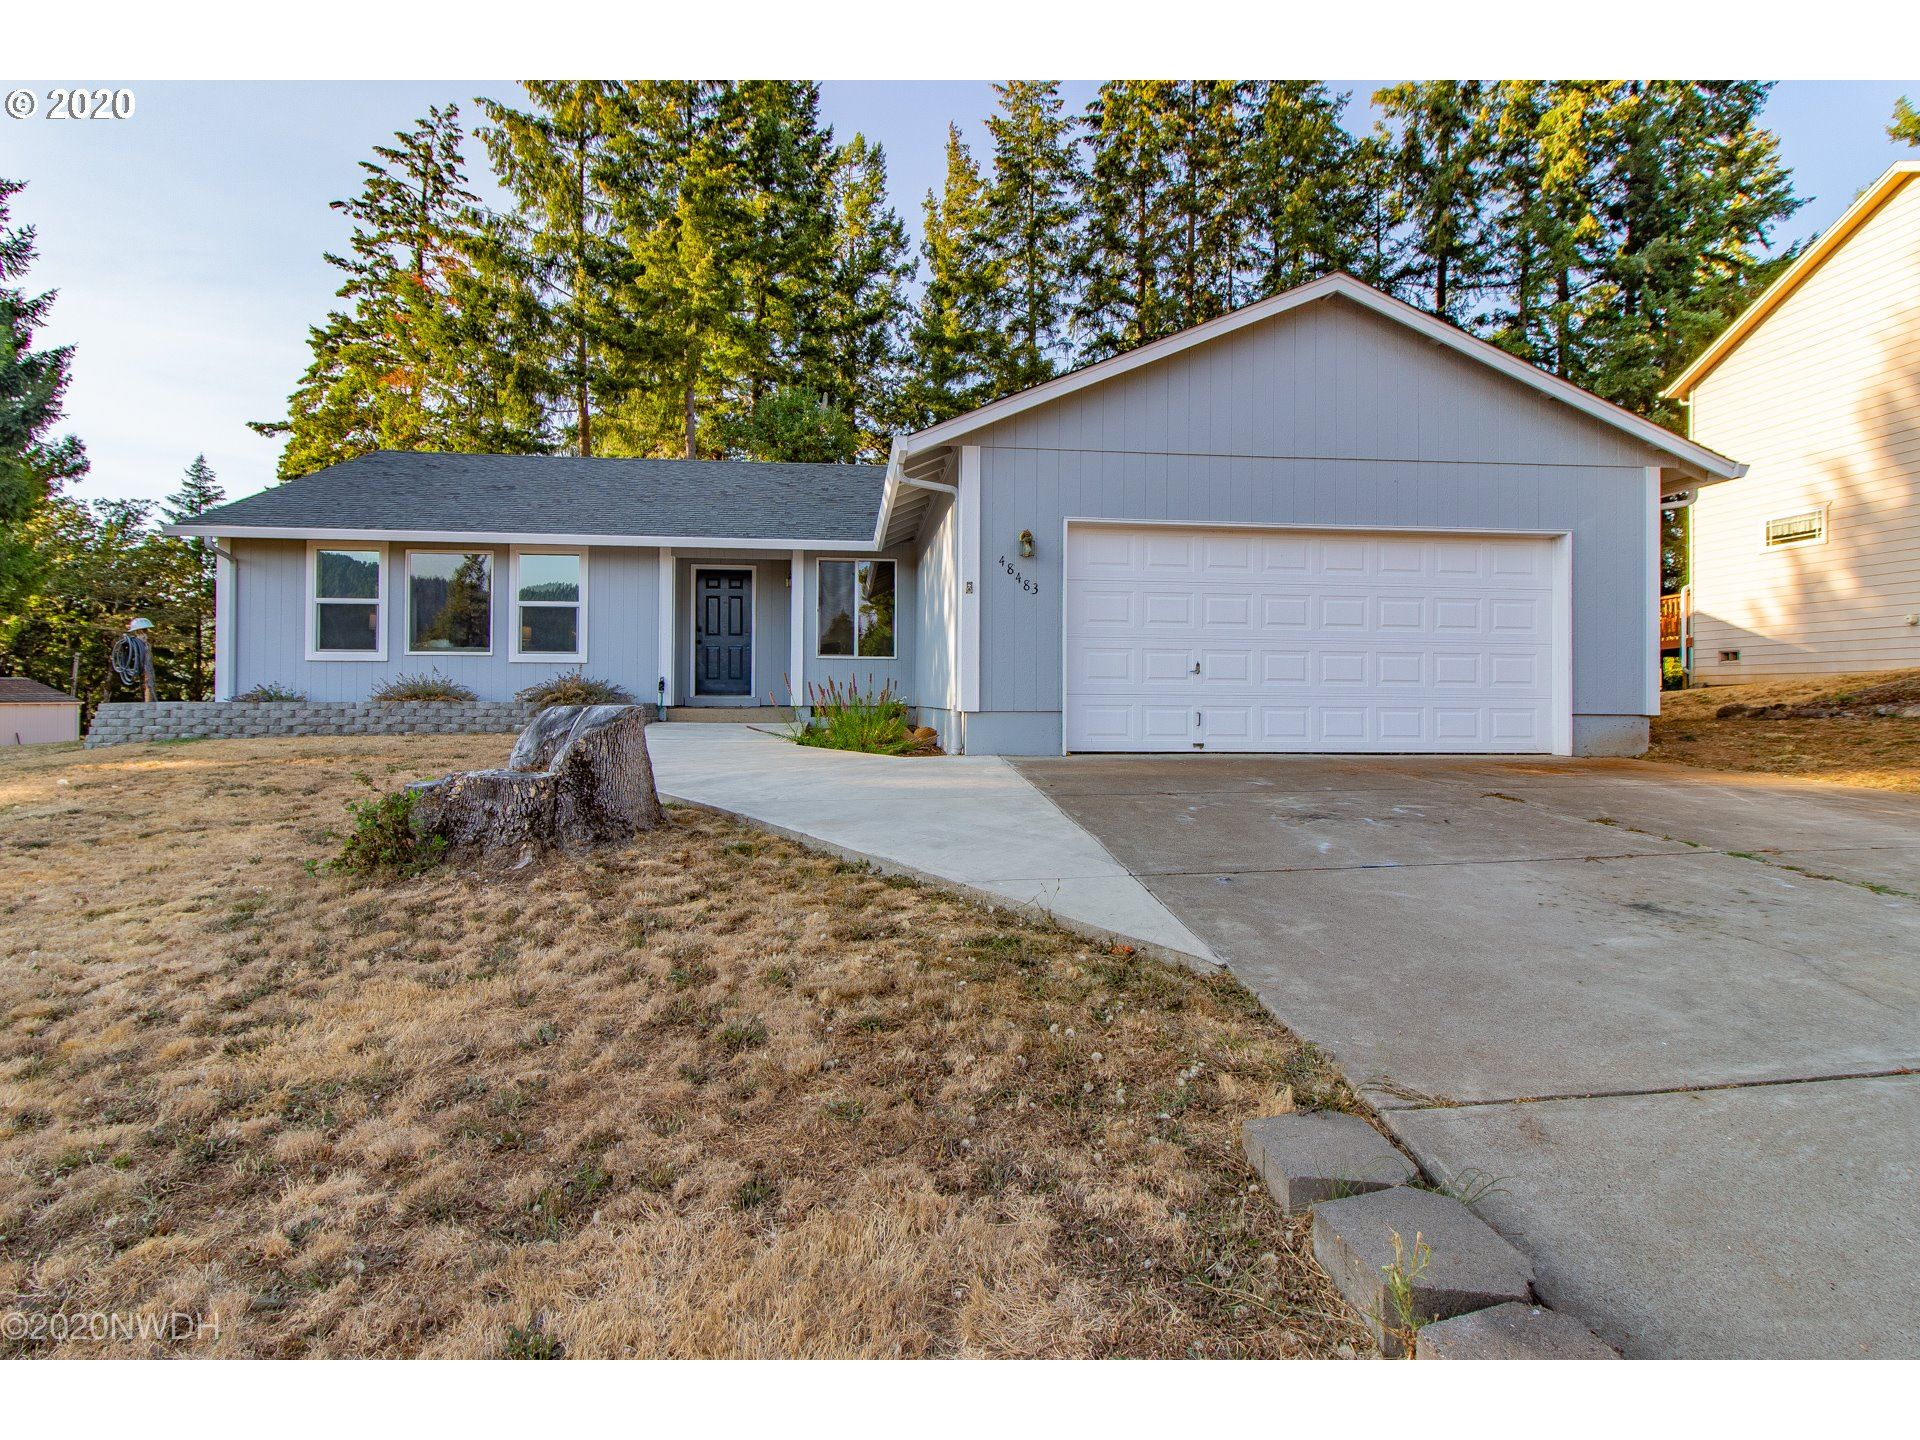 Photo for 48483 HILAND RANCH DR, Oakridge, OR 97463 (MLS # 20518841)